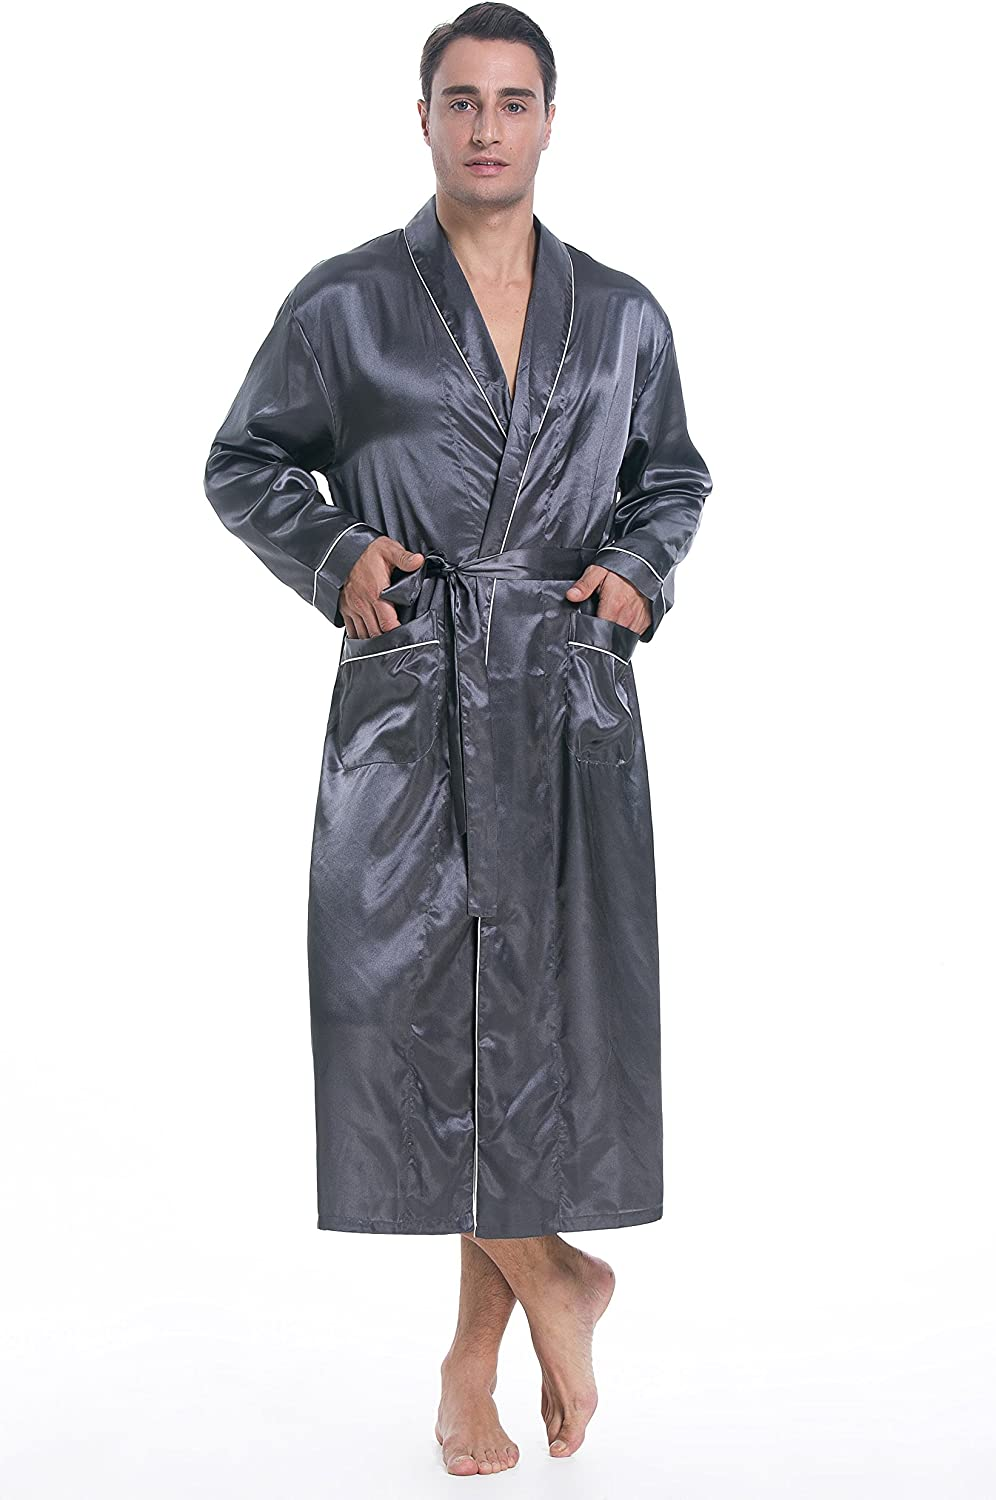 Lavenderi Mens Silky Satin Lounge Robe, Long Lightweight Sleepwear